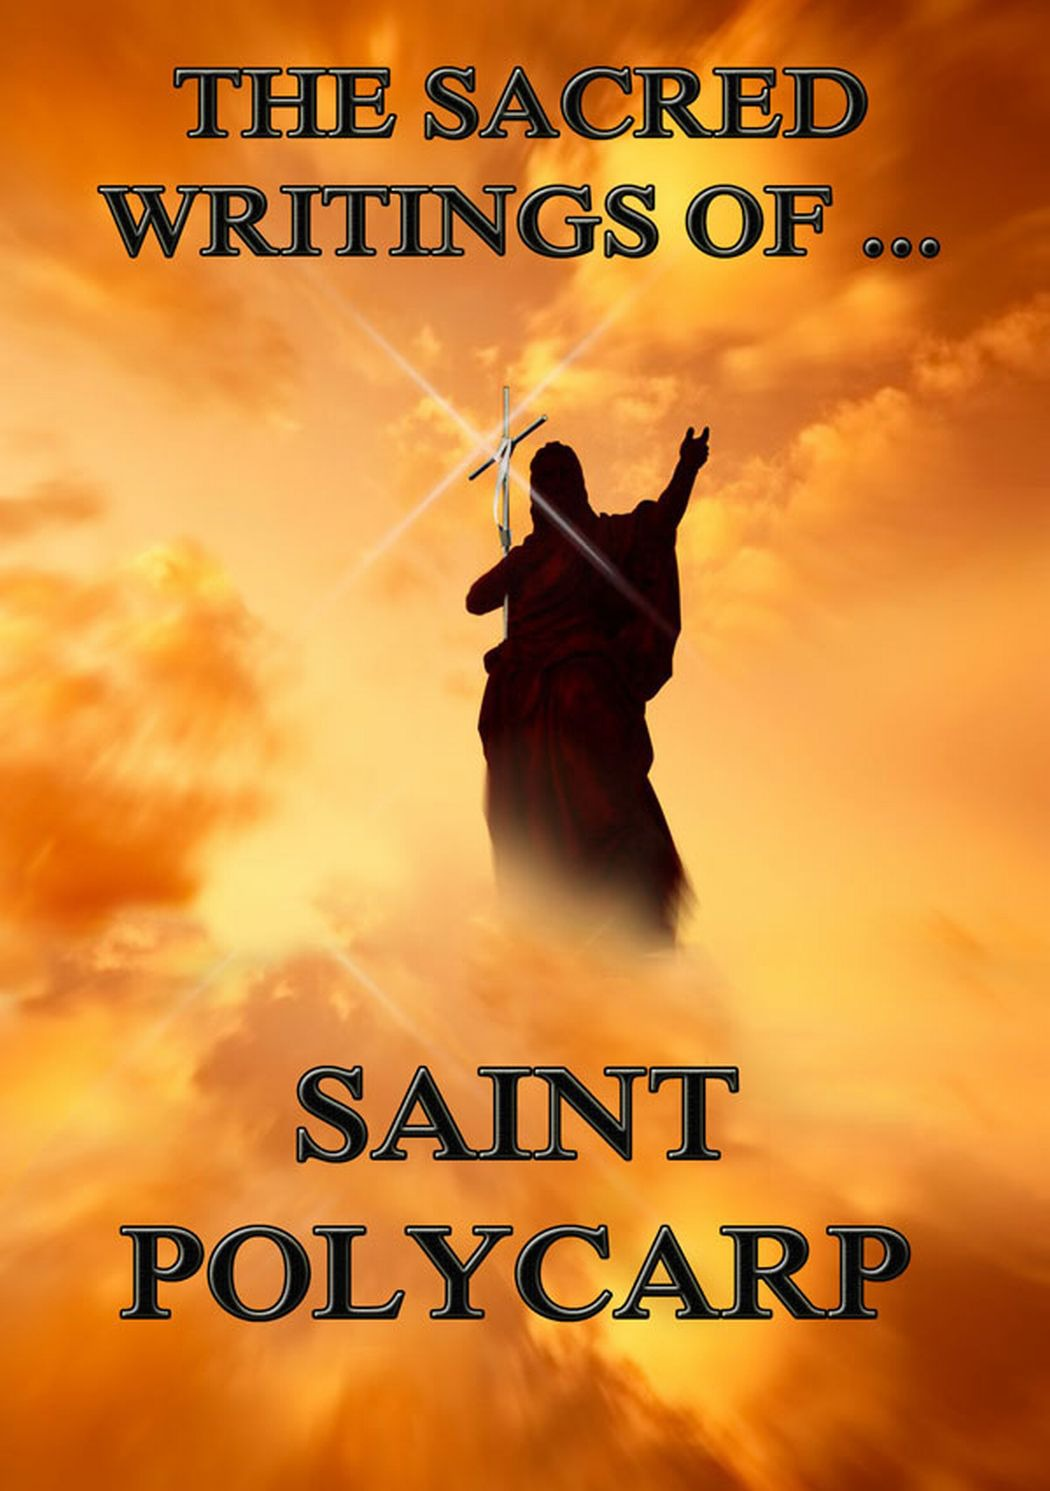 Saint Polycarp The Sacred Writings of Saint Polycarp недорого